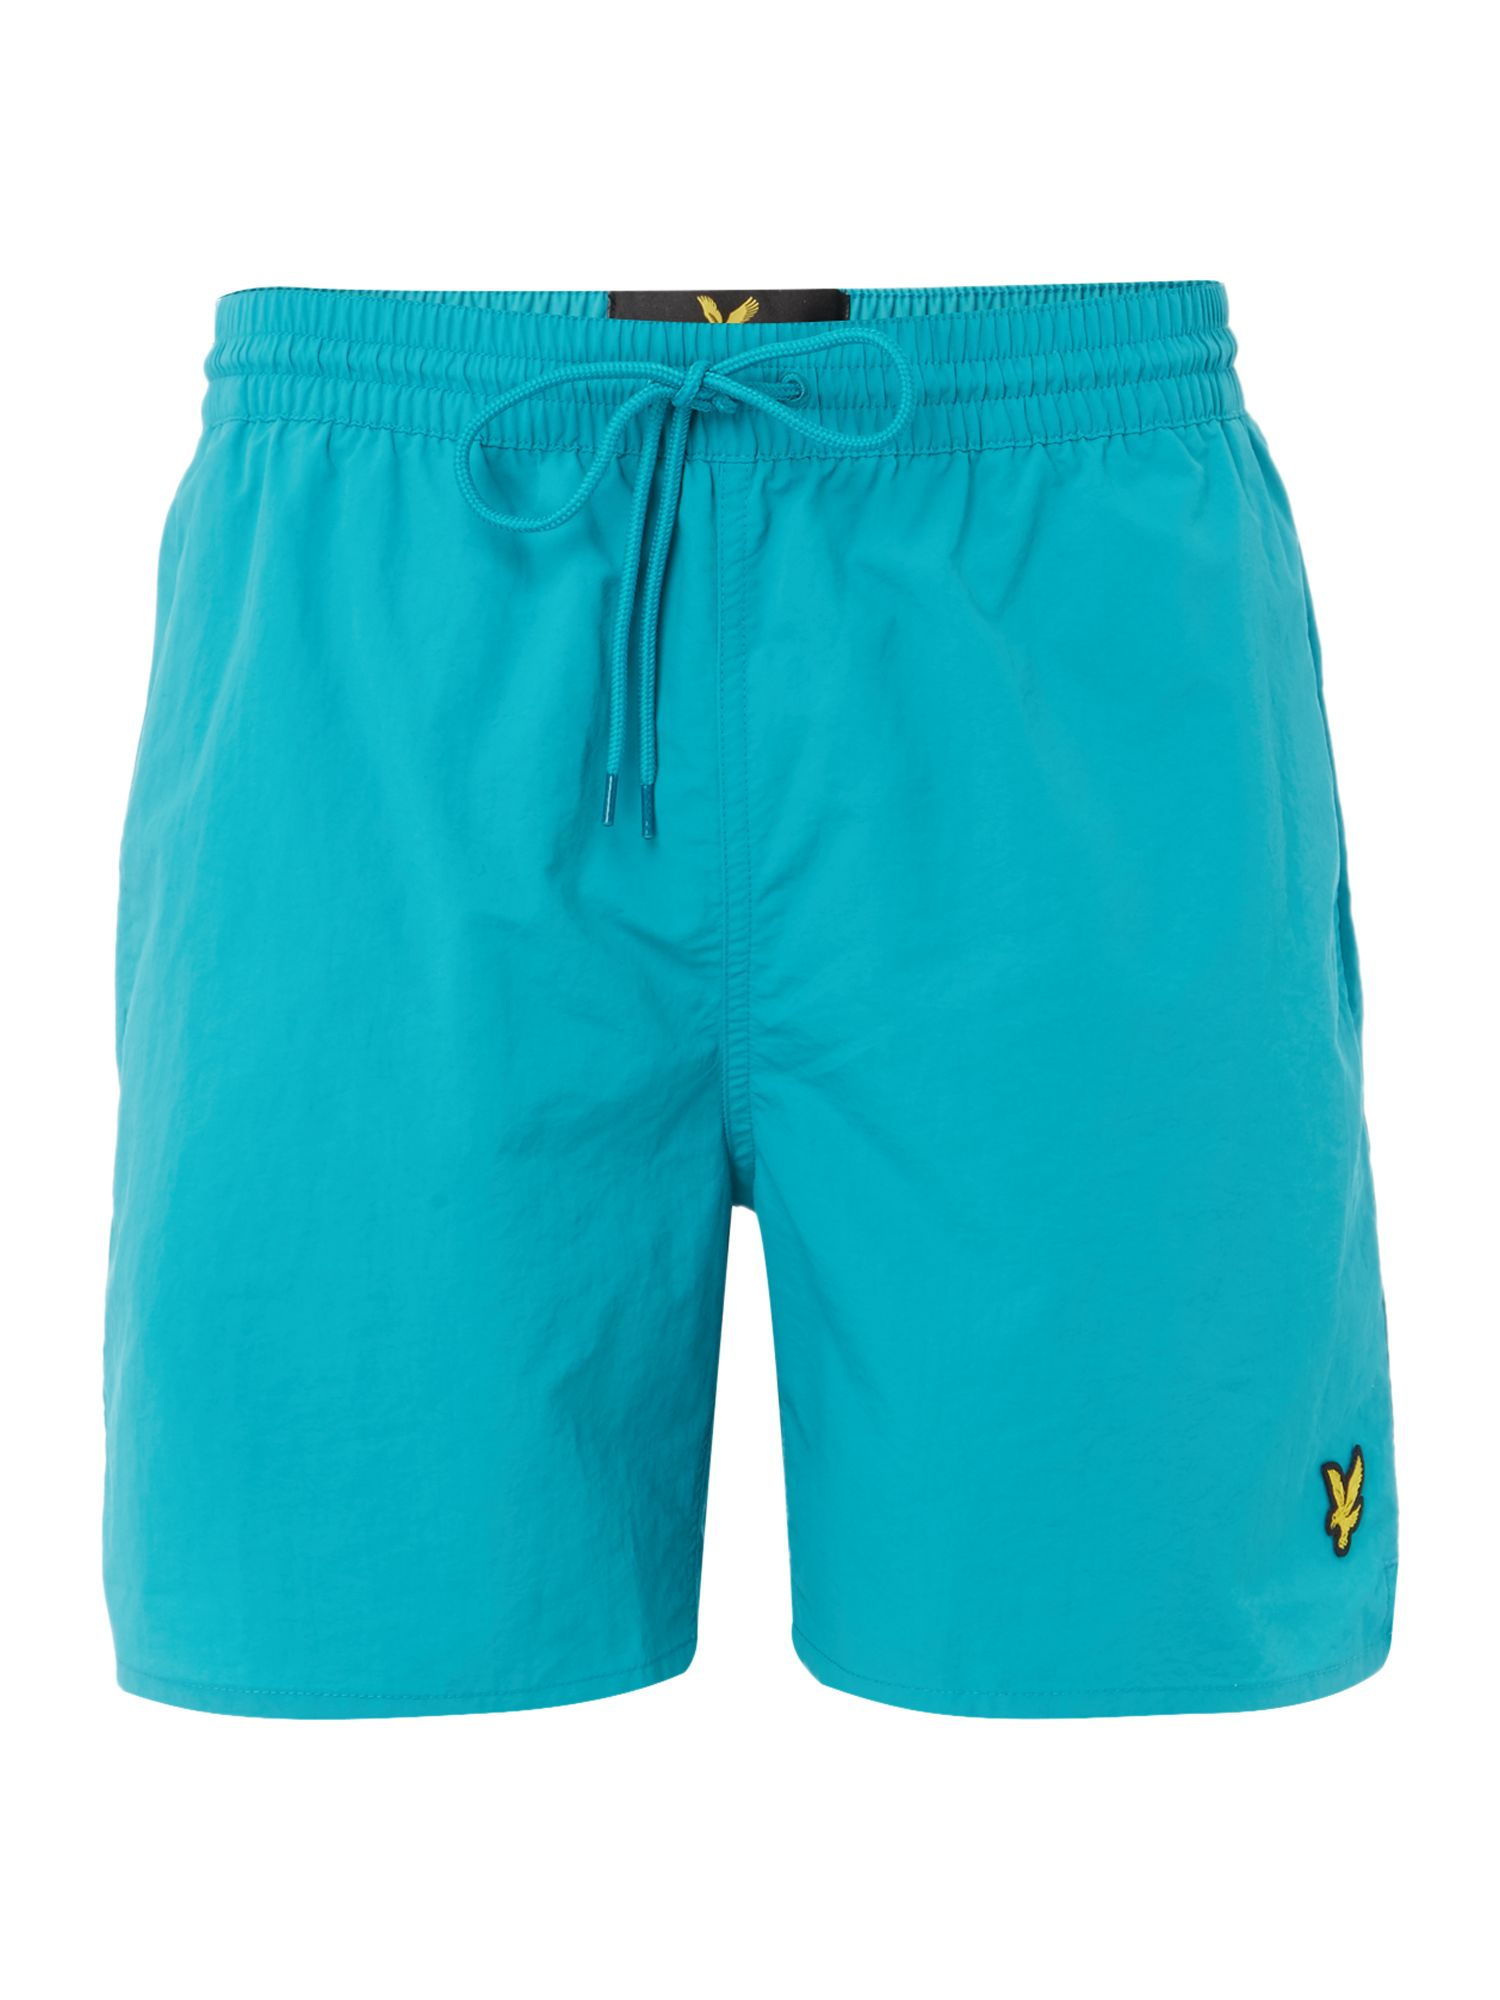 Men's Lyle and Scott Classic Plain Logo Short, Aqua